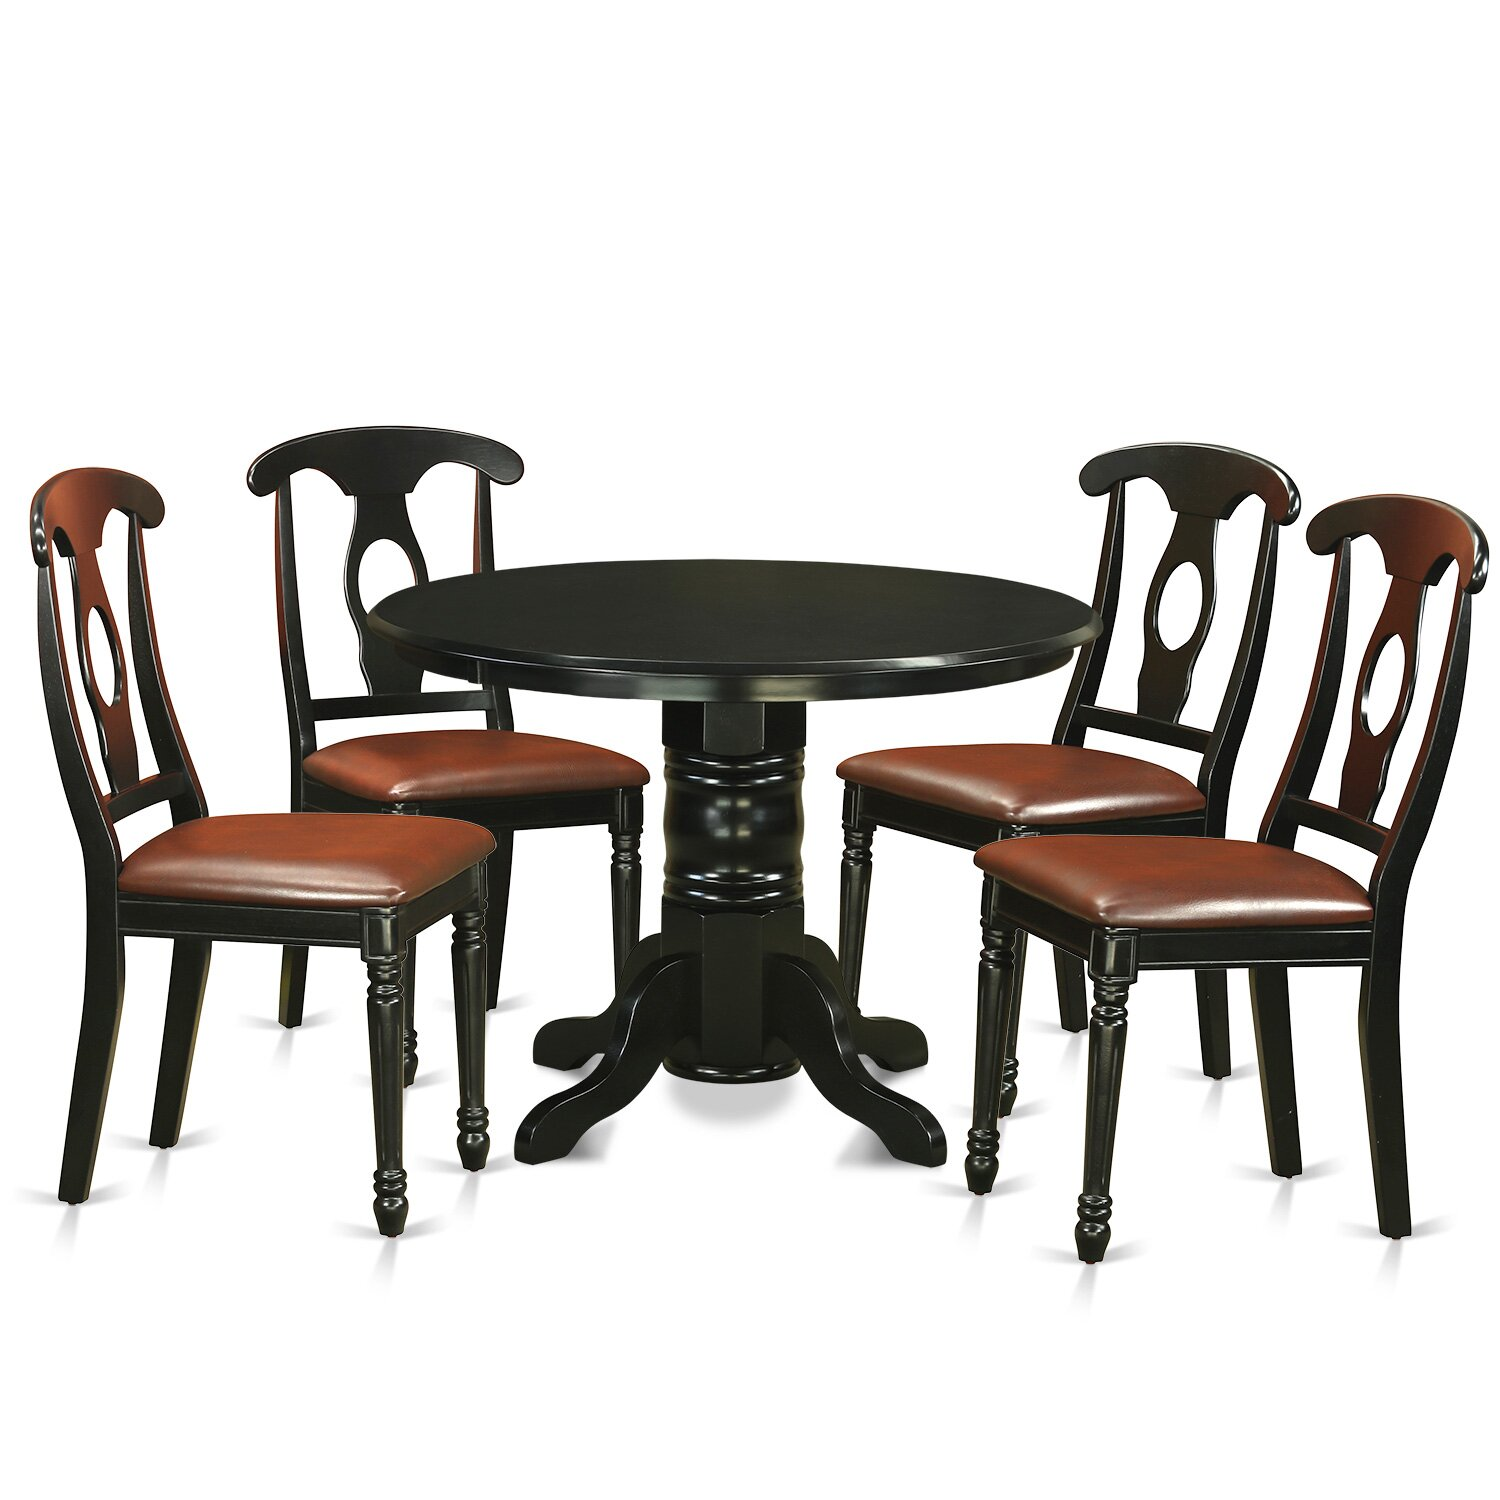 East west shelton 5 piece dining set reviews wayfair for Kitchen dining room furniture